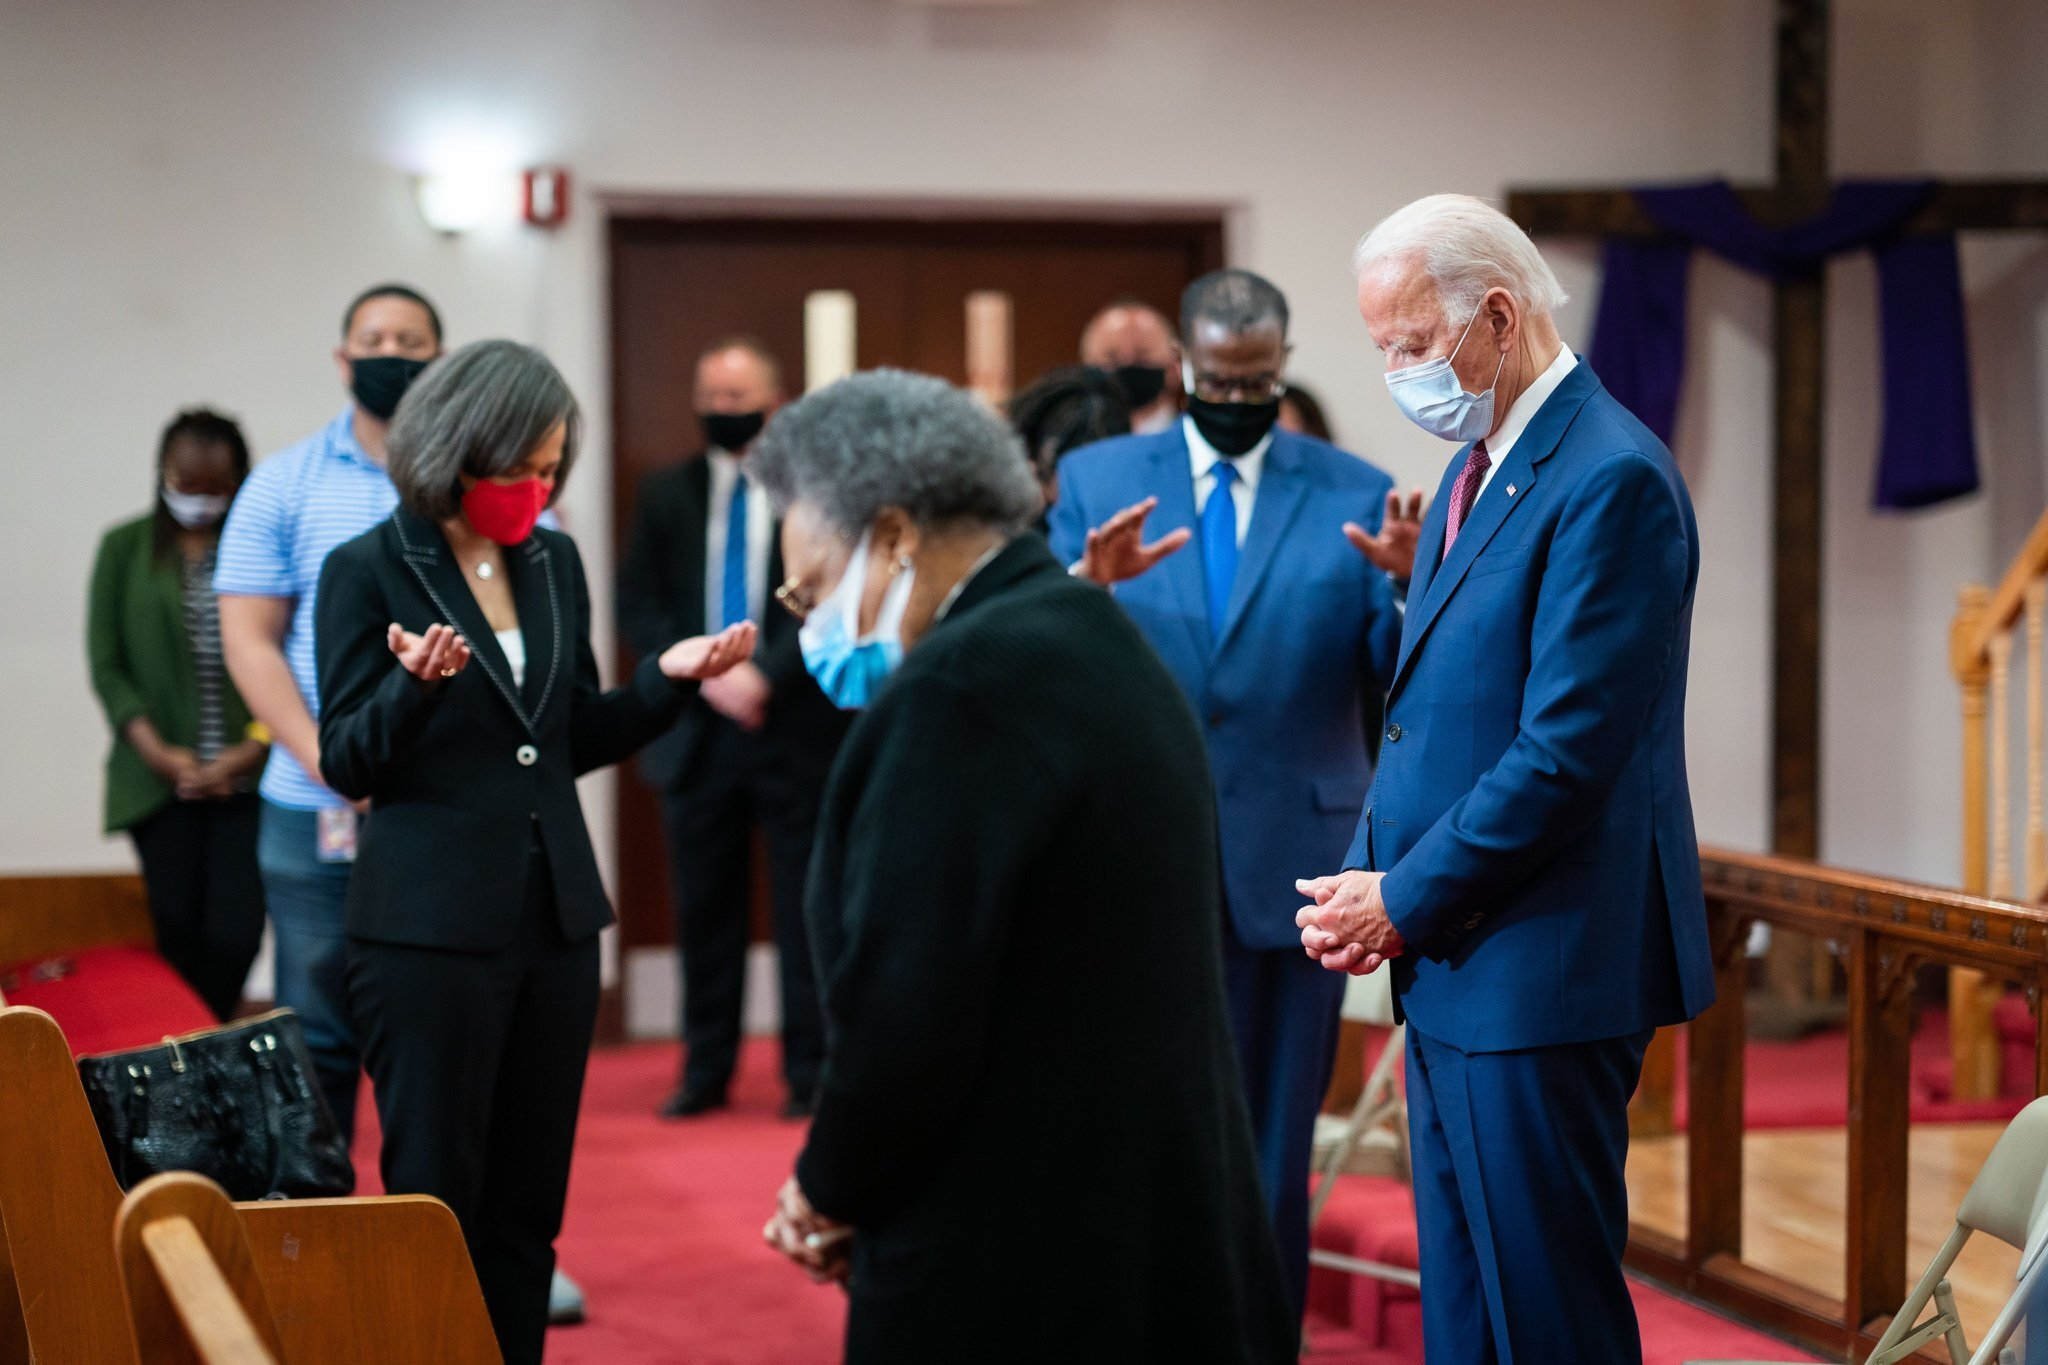 Rev. Silvester Beaman, Joe Biden and others stand inside a church with their heads down in prayer